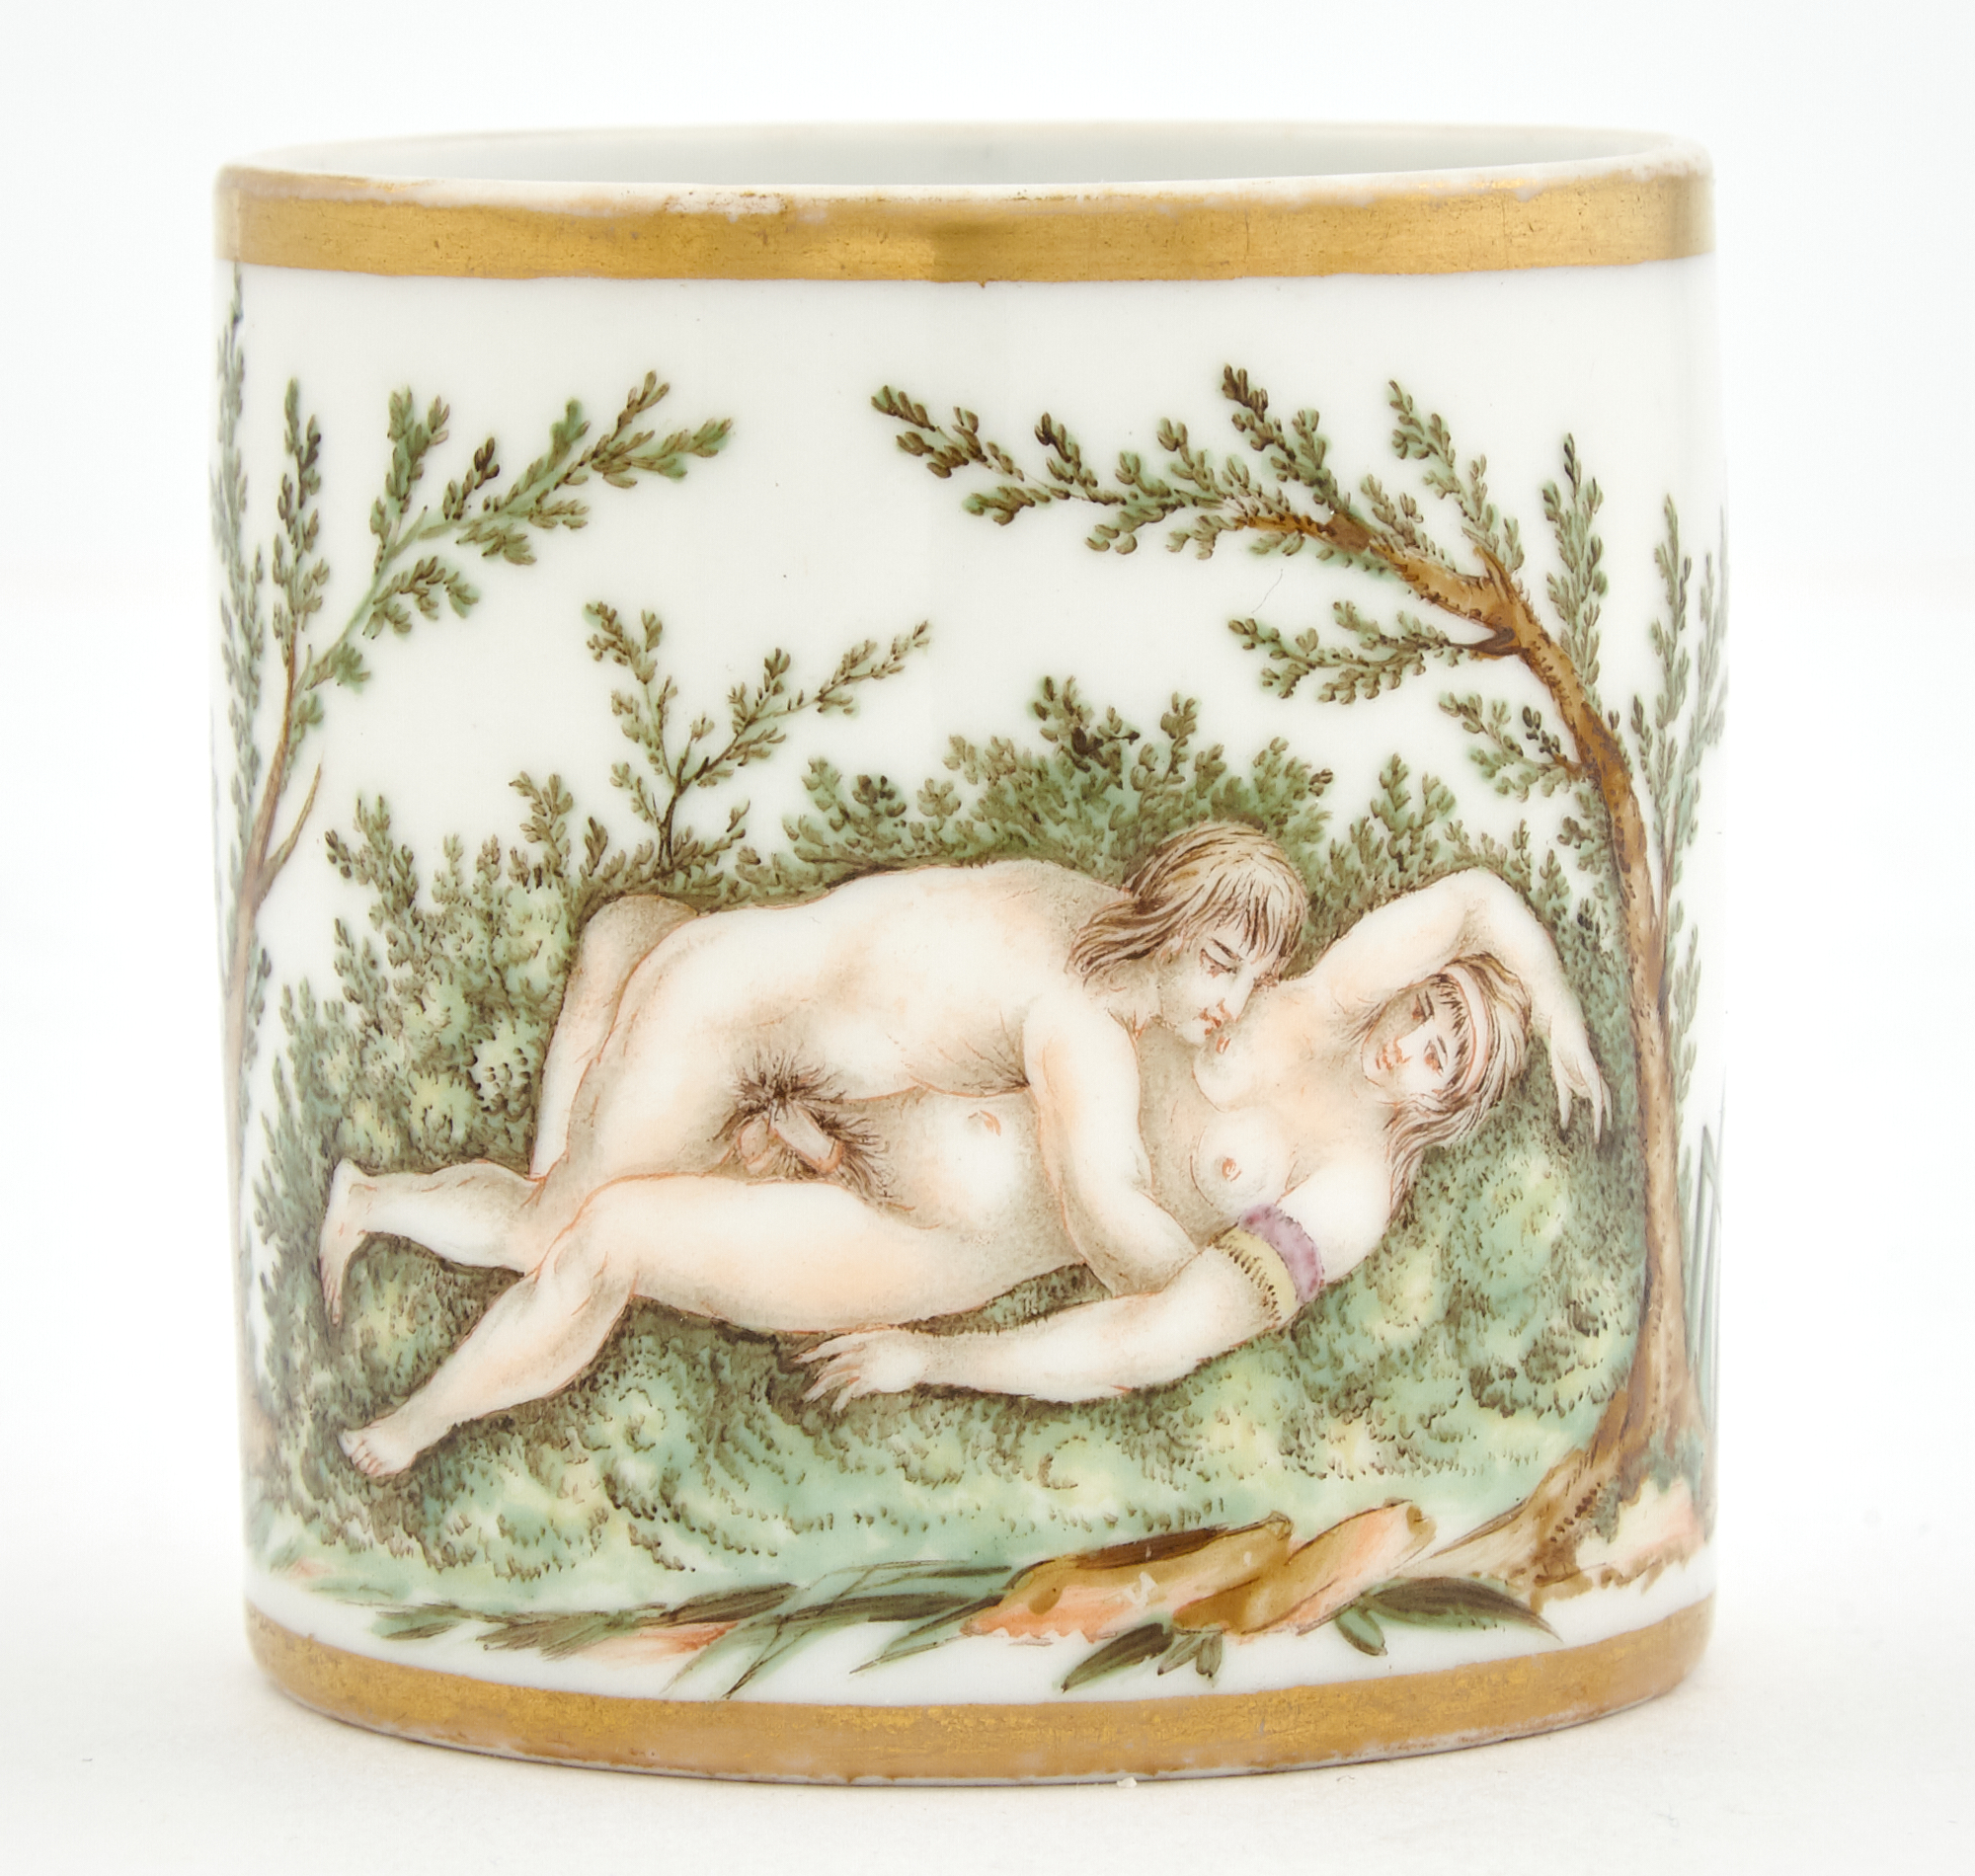 Lot image - Continental Porcelain Erotic Demitasse Cup